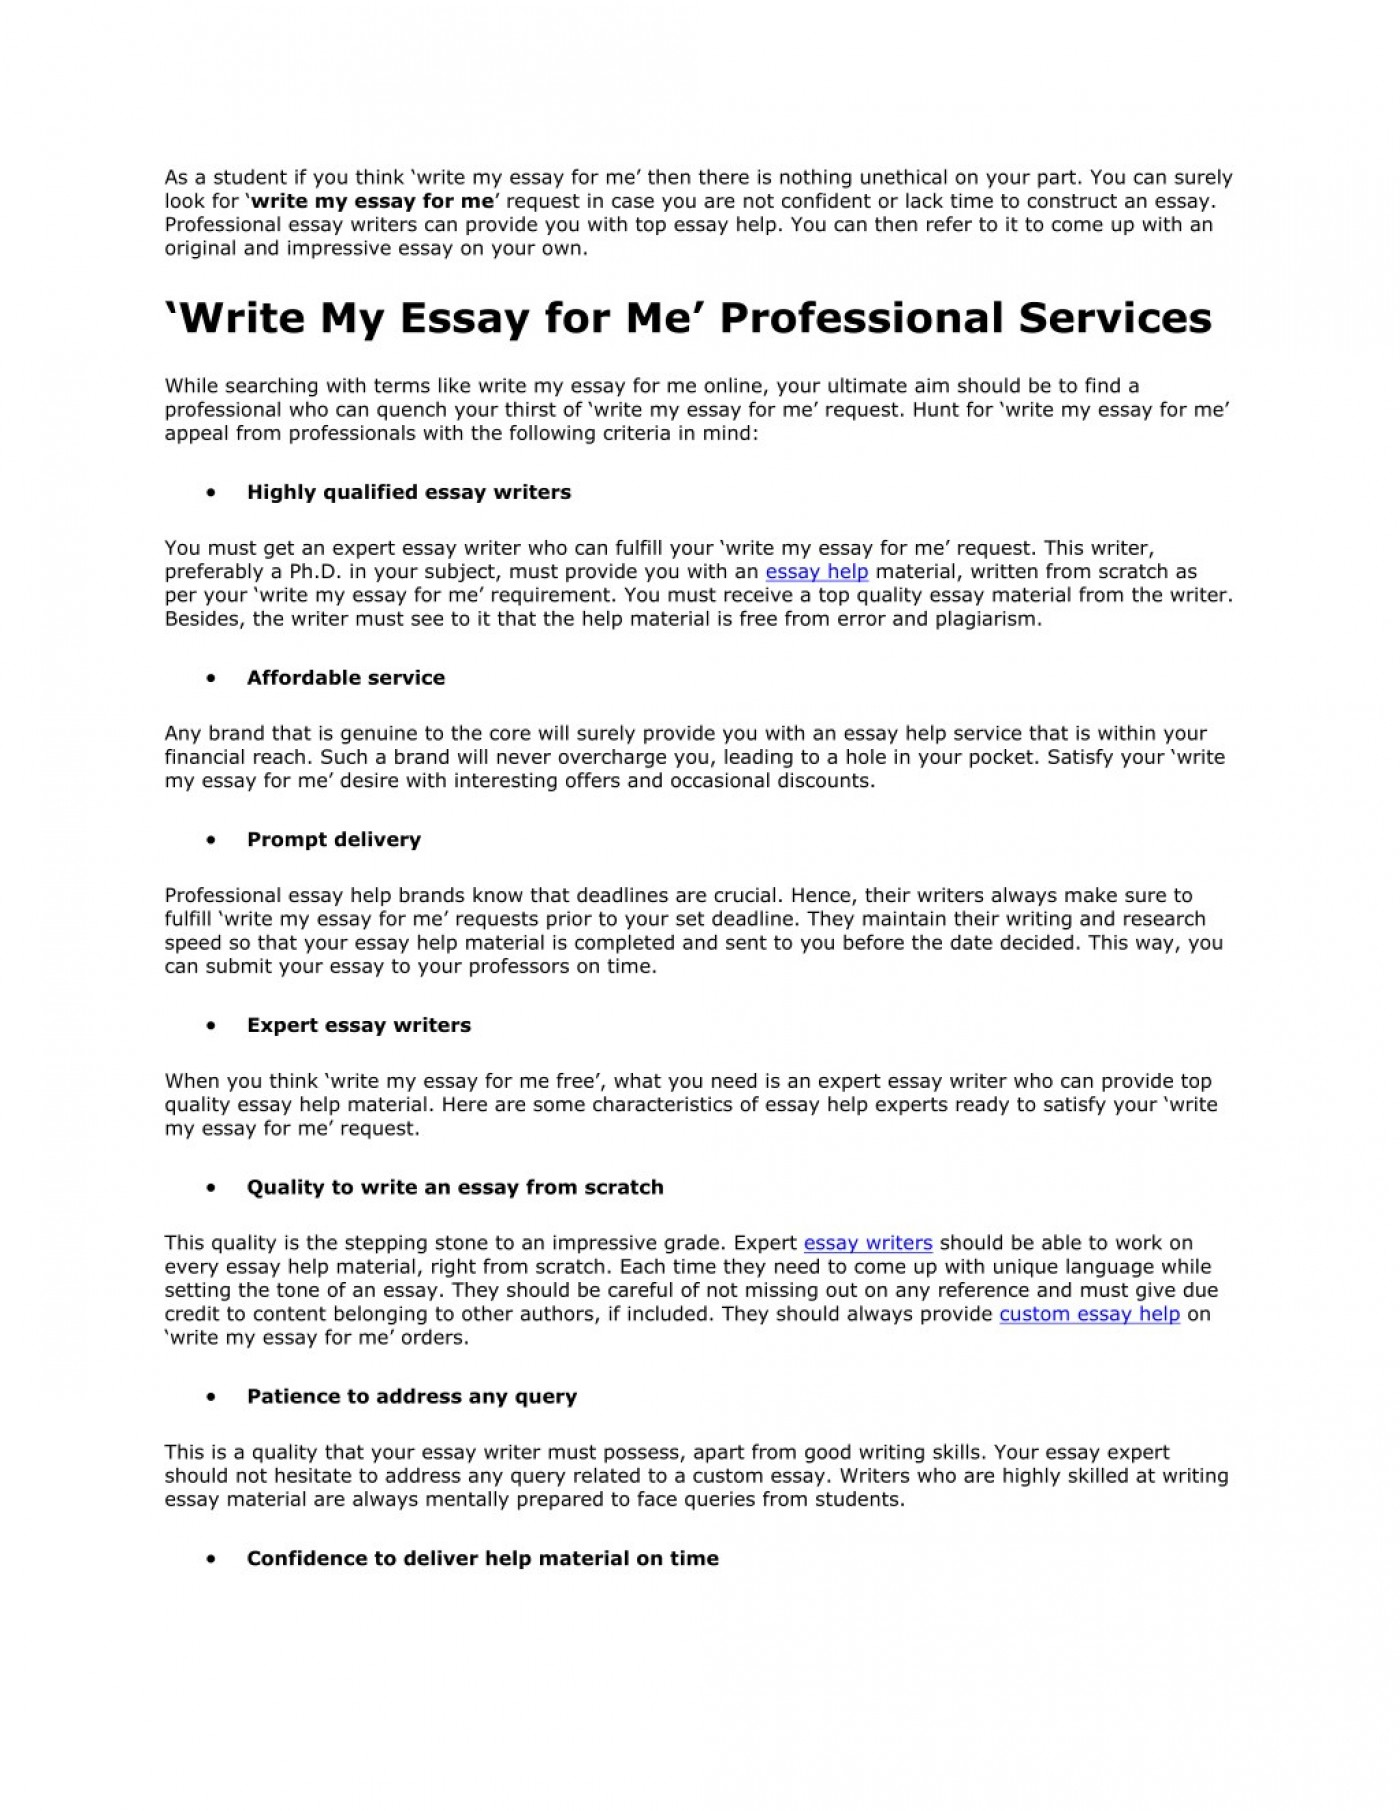 006 Essay Example Write For Me As Student If You Think My Amazing Uk College Free Cheap 1400